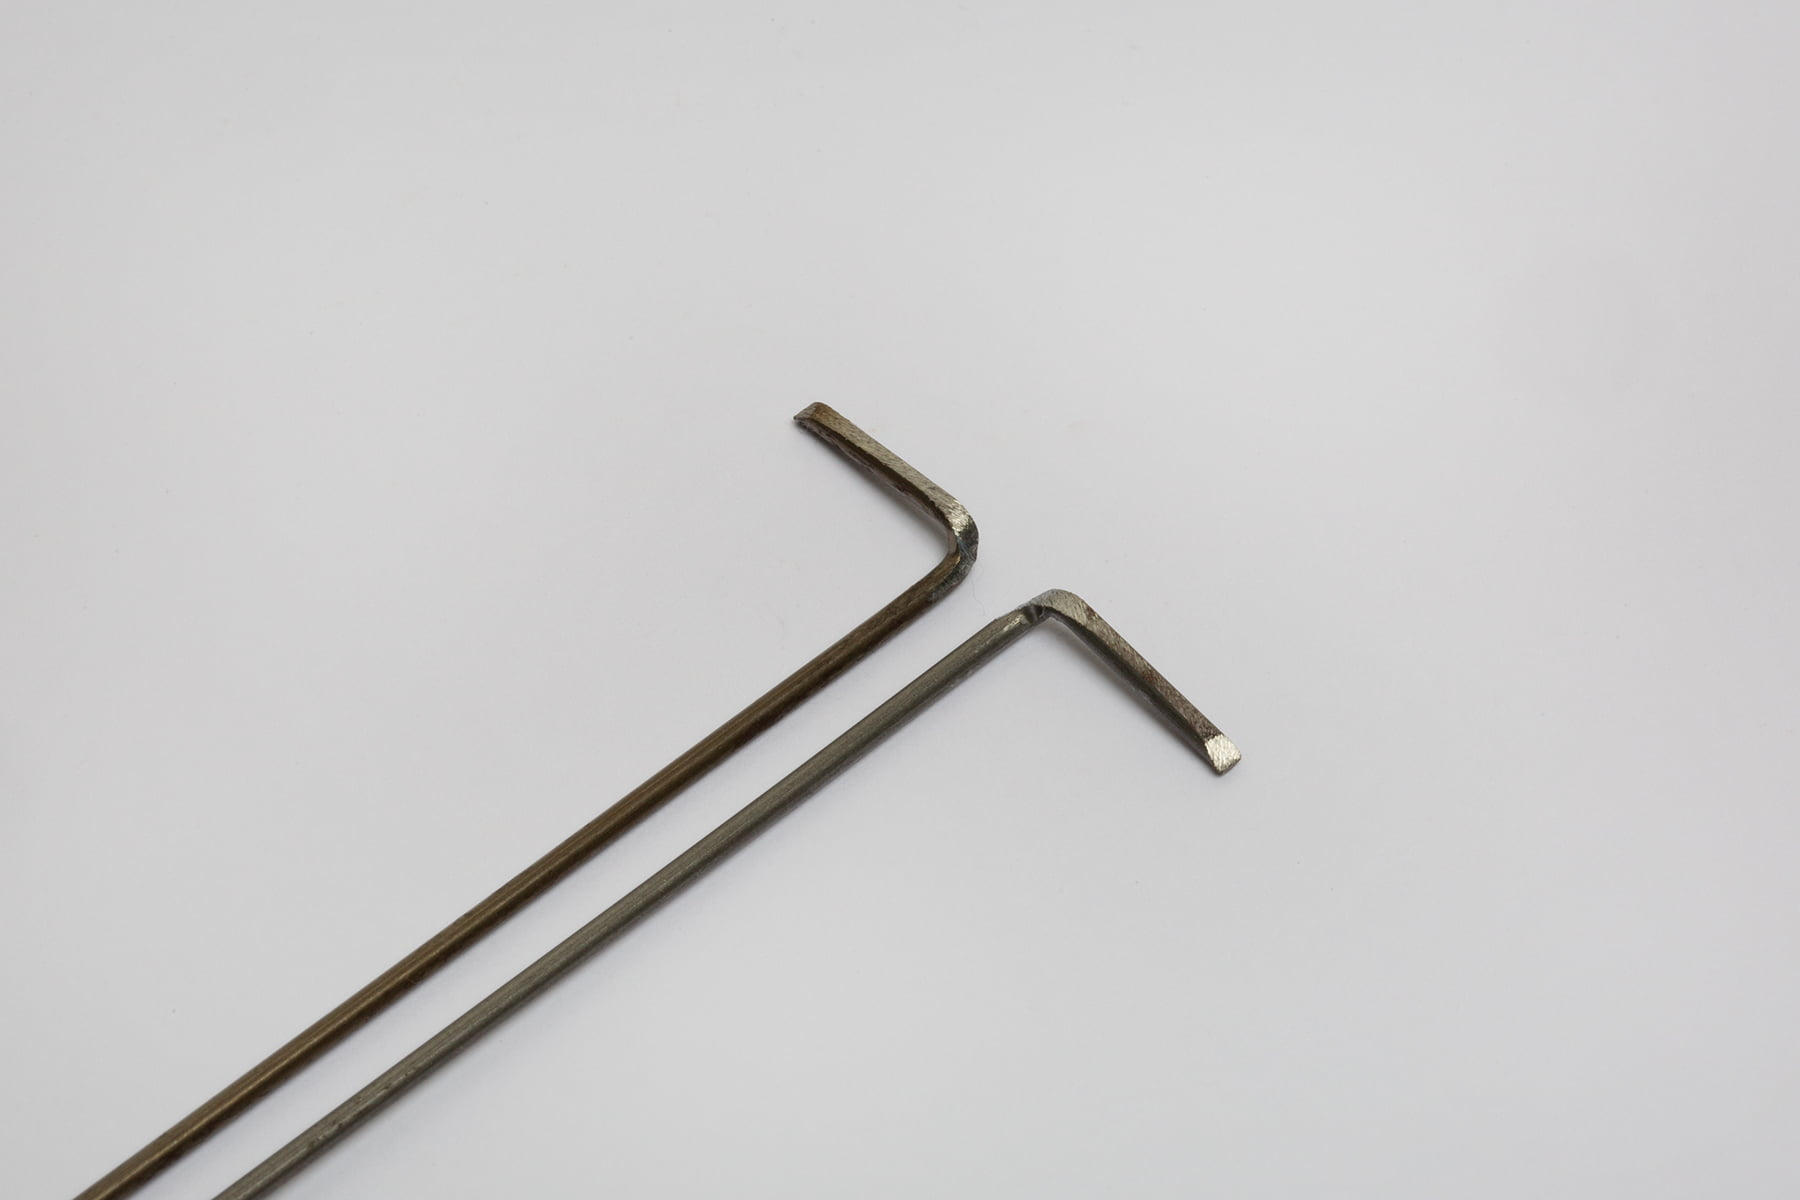 Set of long Pick Wires